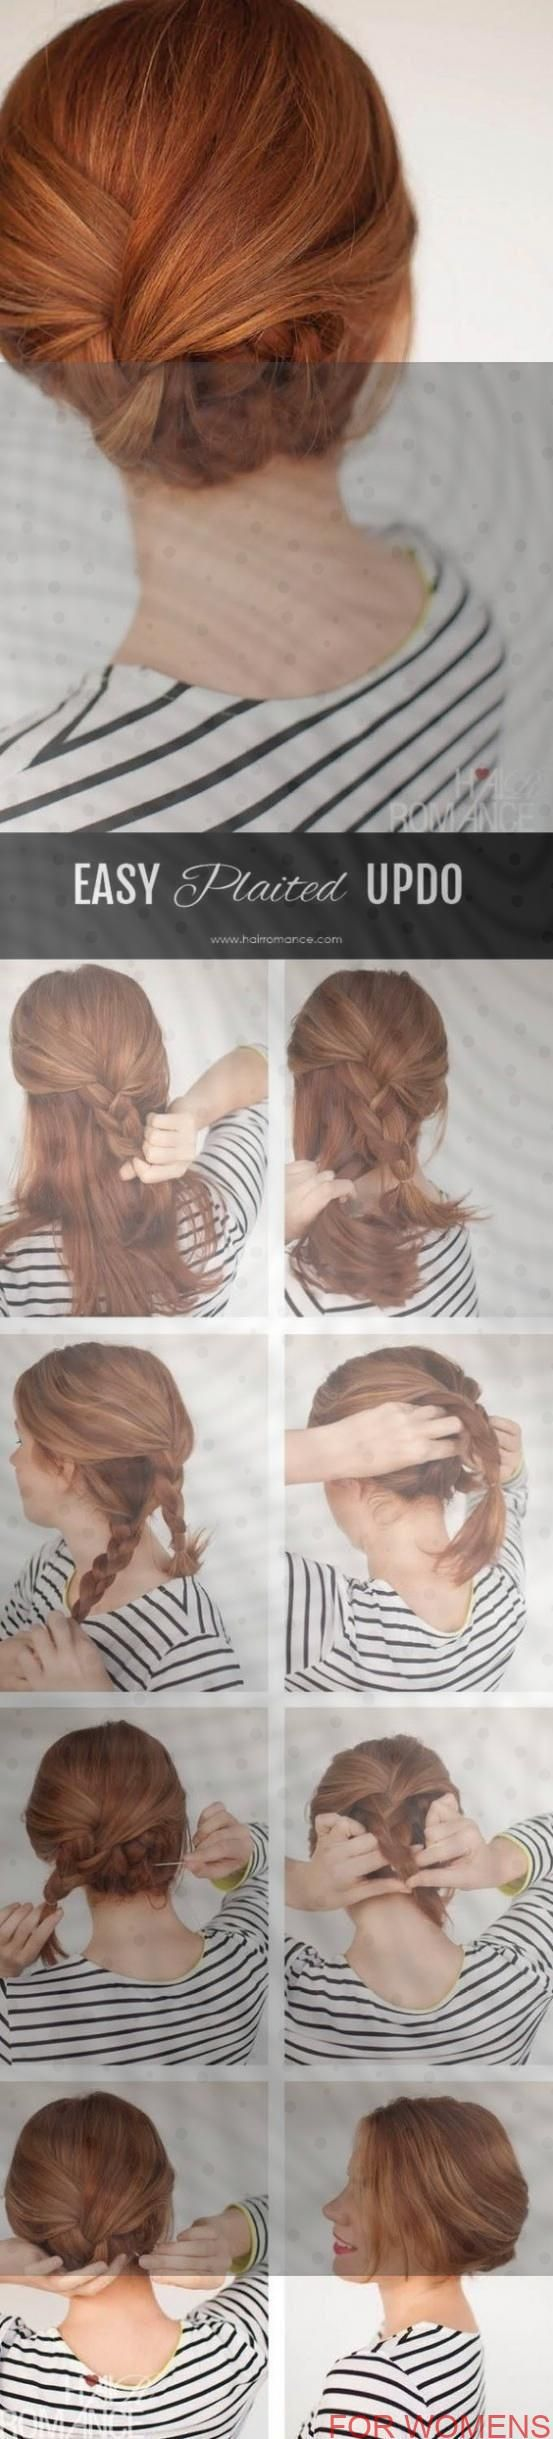 Express Hairstyles for Everyday Life | Simple and Simple Hairstyle – Hairstyles 2019 …